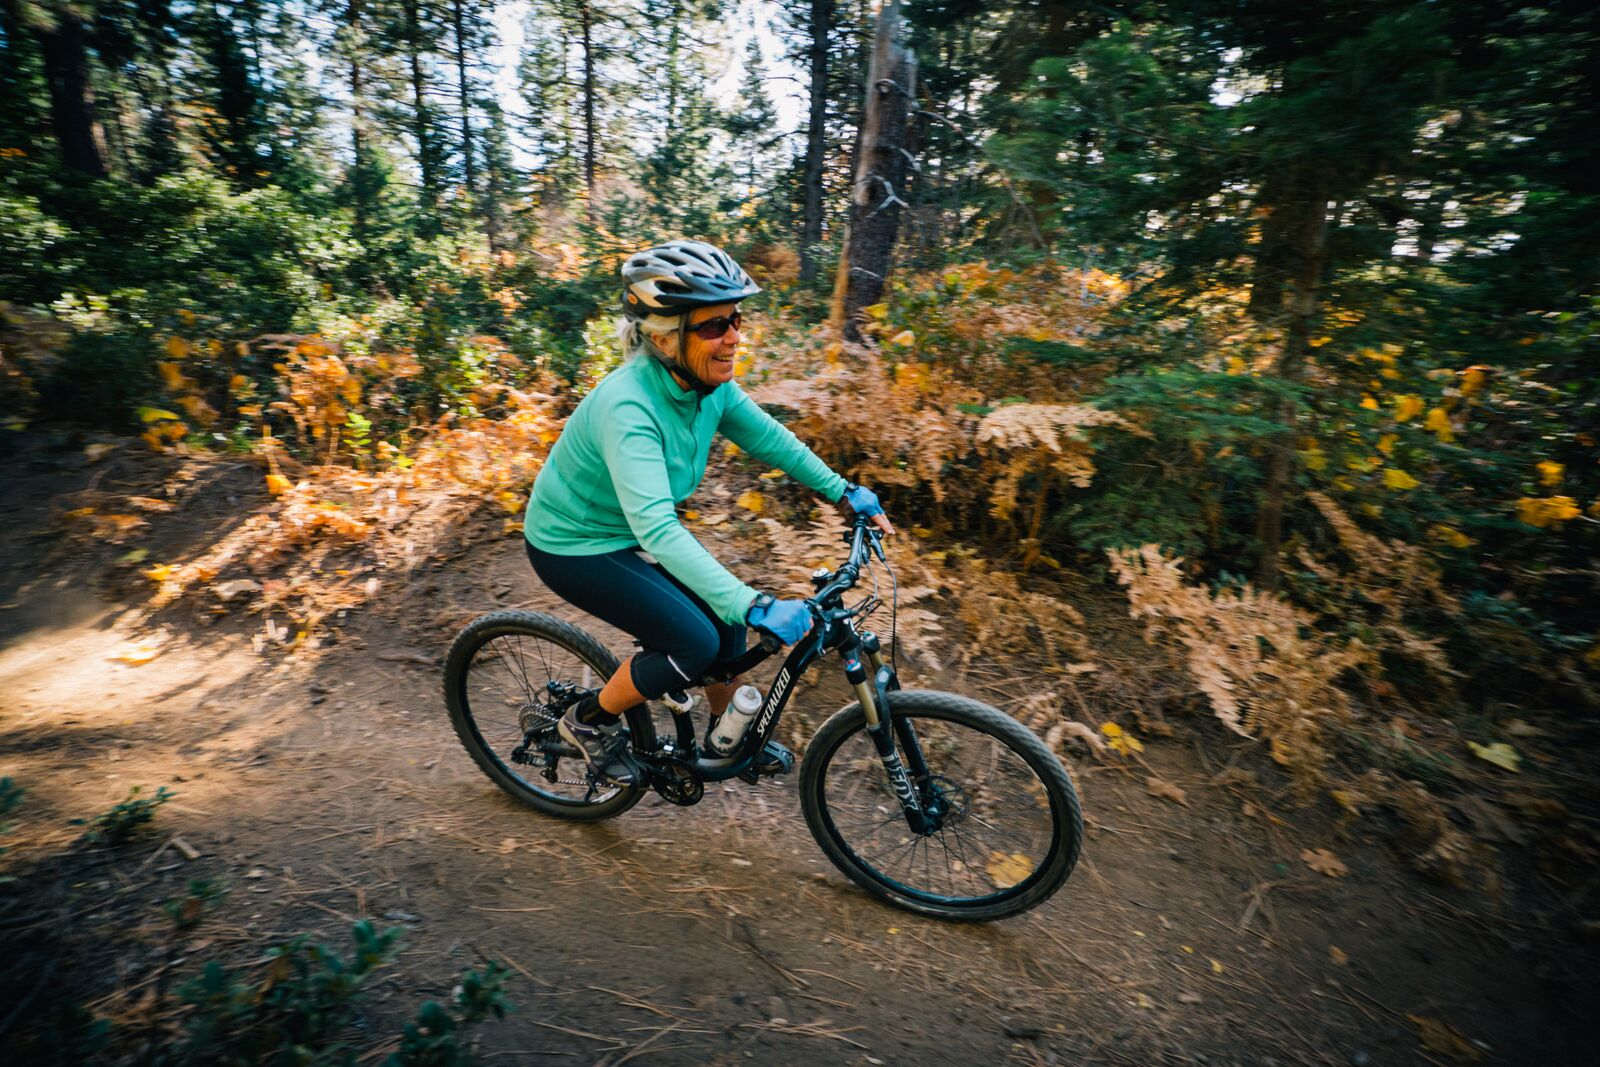 McCloud River Trail - This is an option for a more mellow mountain bike experience along one of the most beautiful rivers in Northern California. 100% singletrack which can include lunch, snacks, and swimming! Min 6 riders.  Call for costs and times.  (530)340-2908